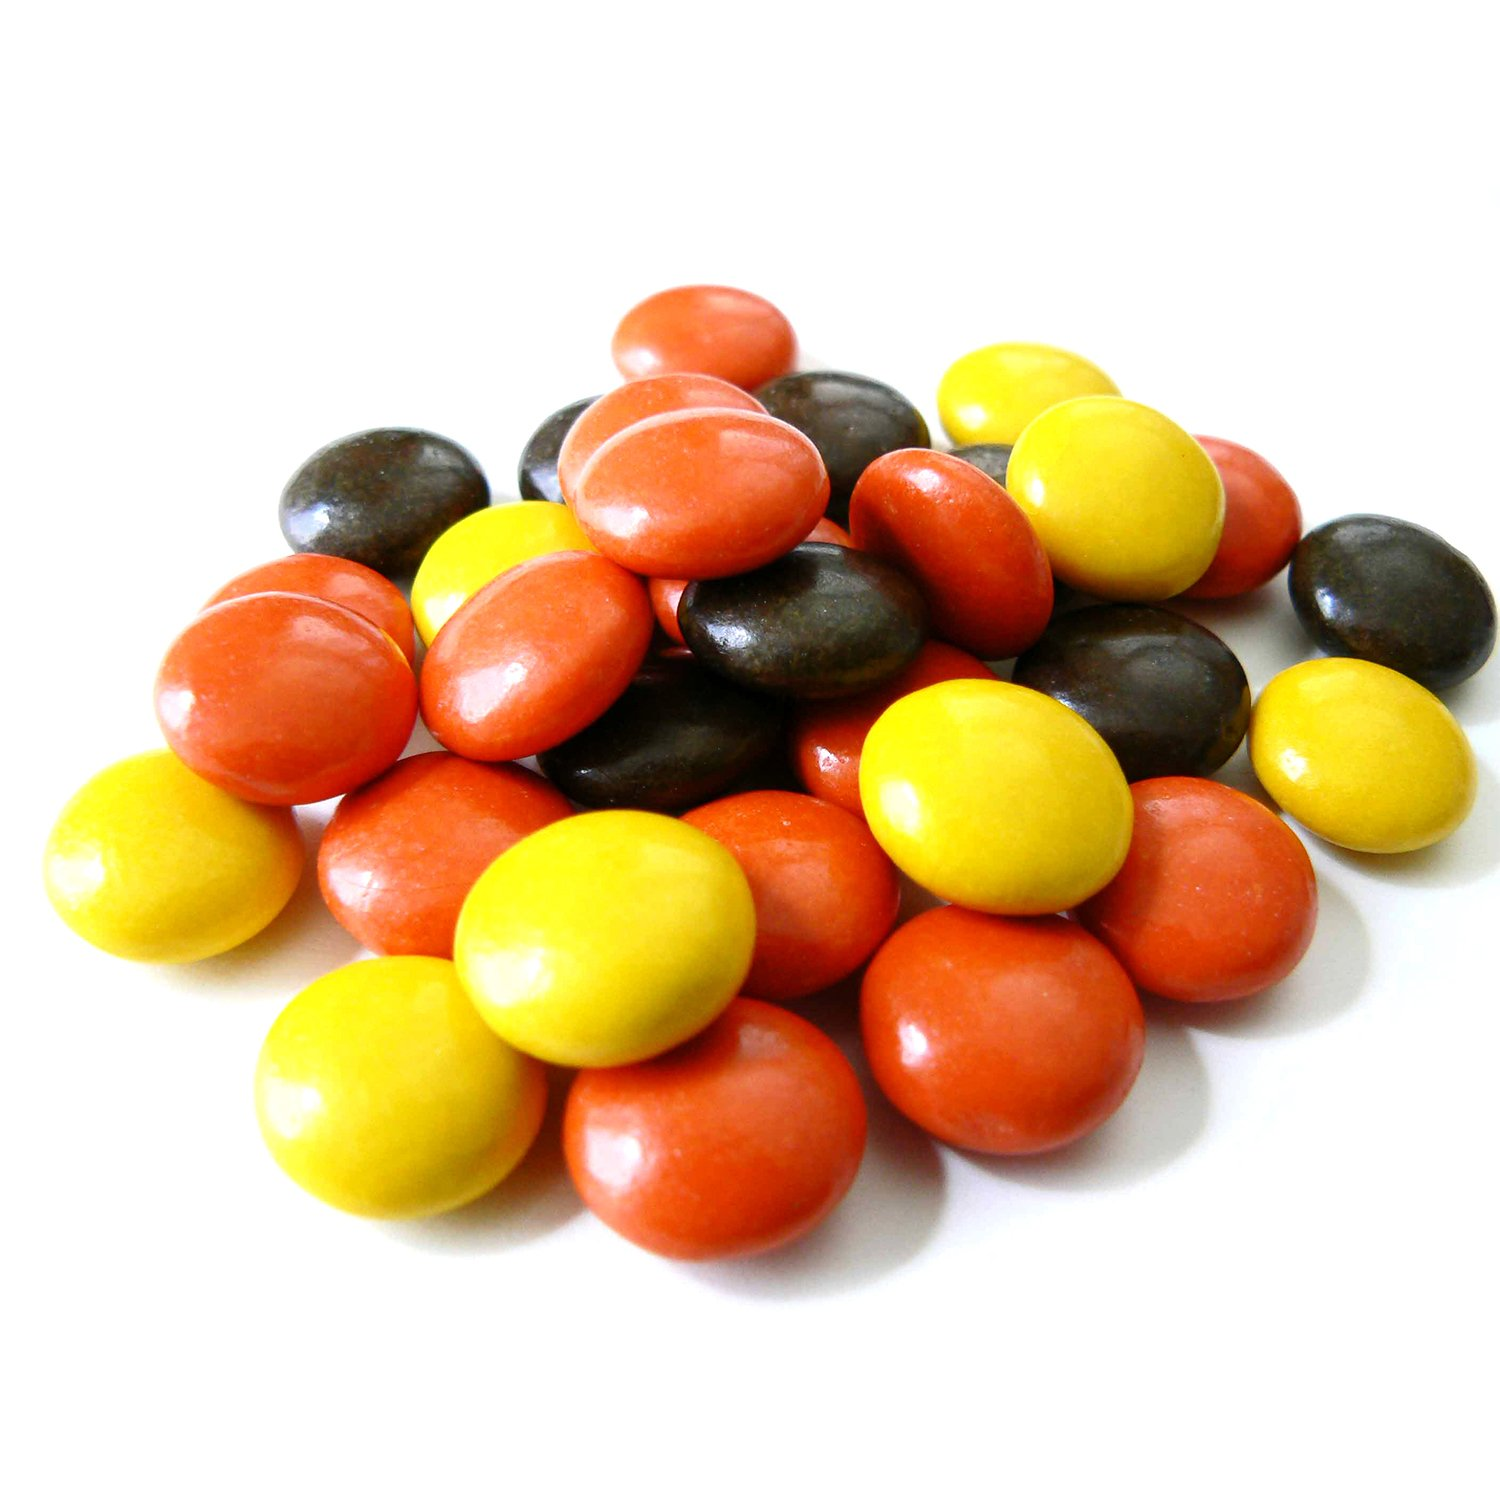 Reese S Pieces Regular All Distributed Items